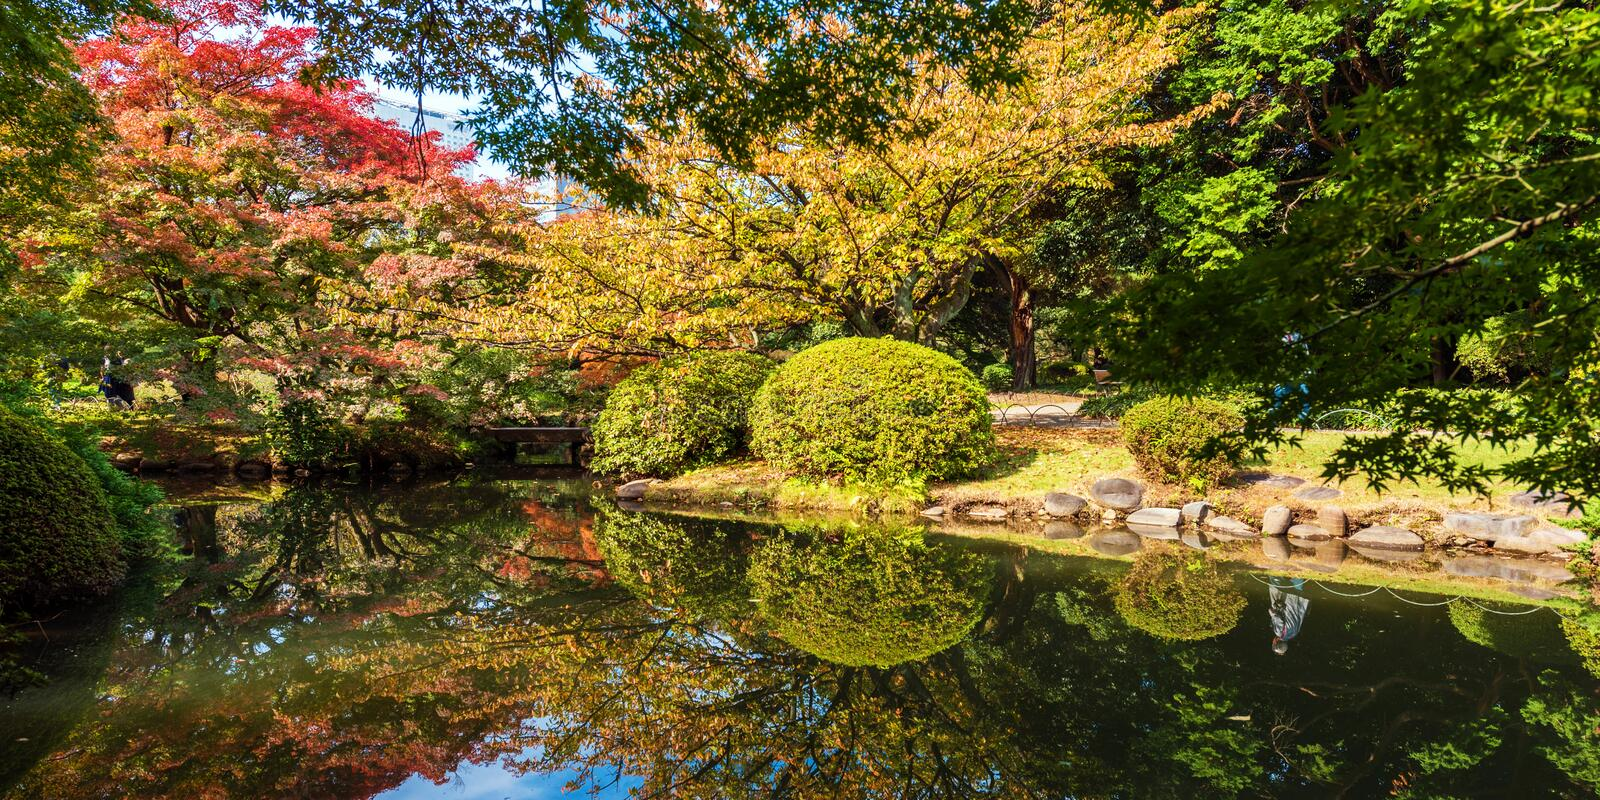 Autumn in the Shinjuku park, Tokyo, Japan. Copy space for text. Autumn in the Shinjuku park, Tokyo, Japan. Copy space for text stock image